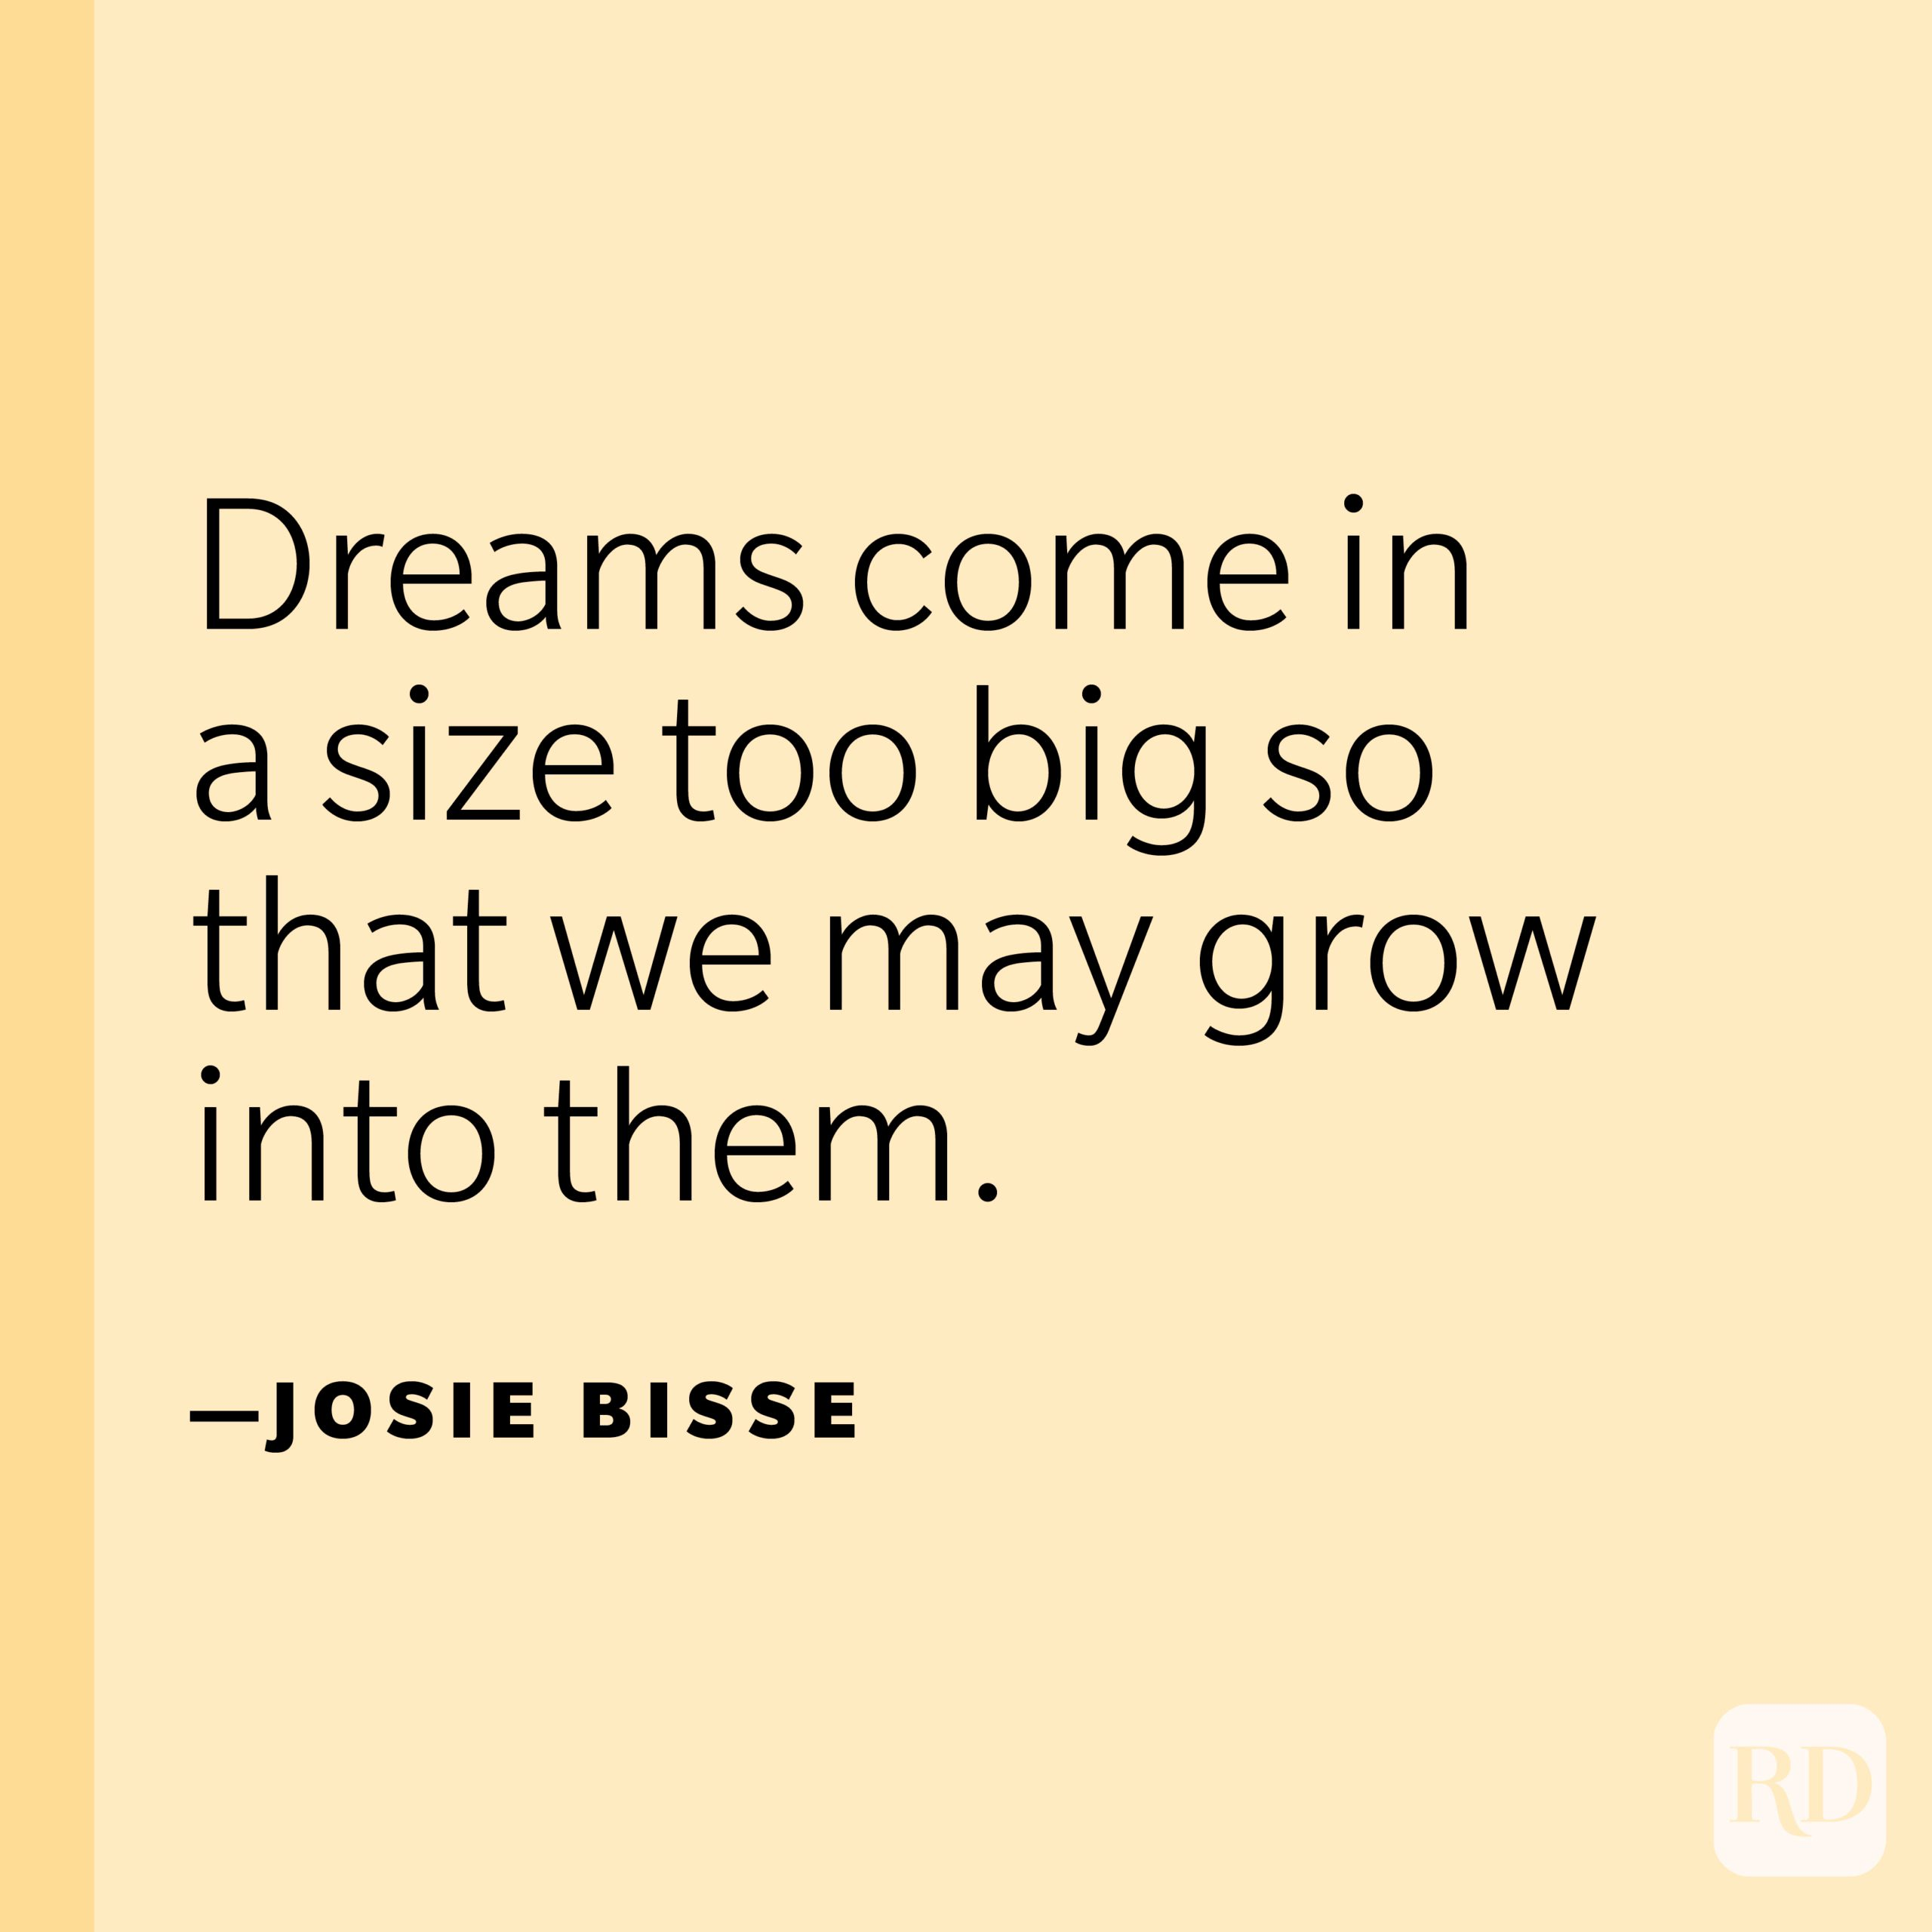 """""""Dreams come in a size too big so that we may grow into them."""" —Josie Bisse"""